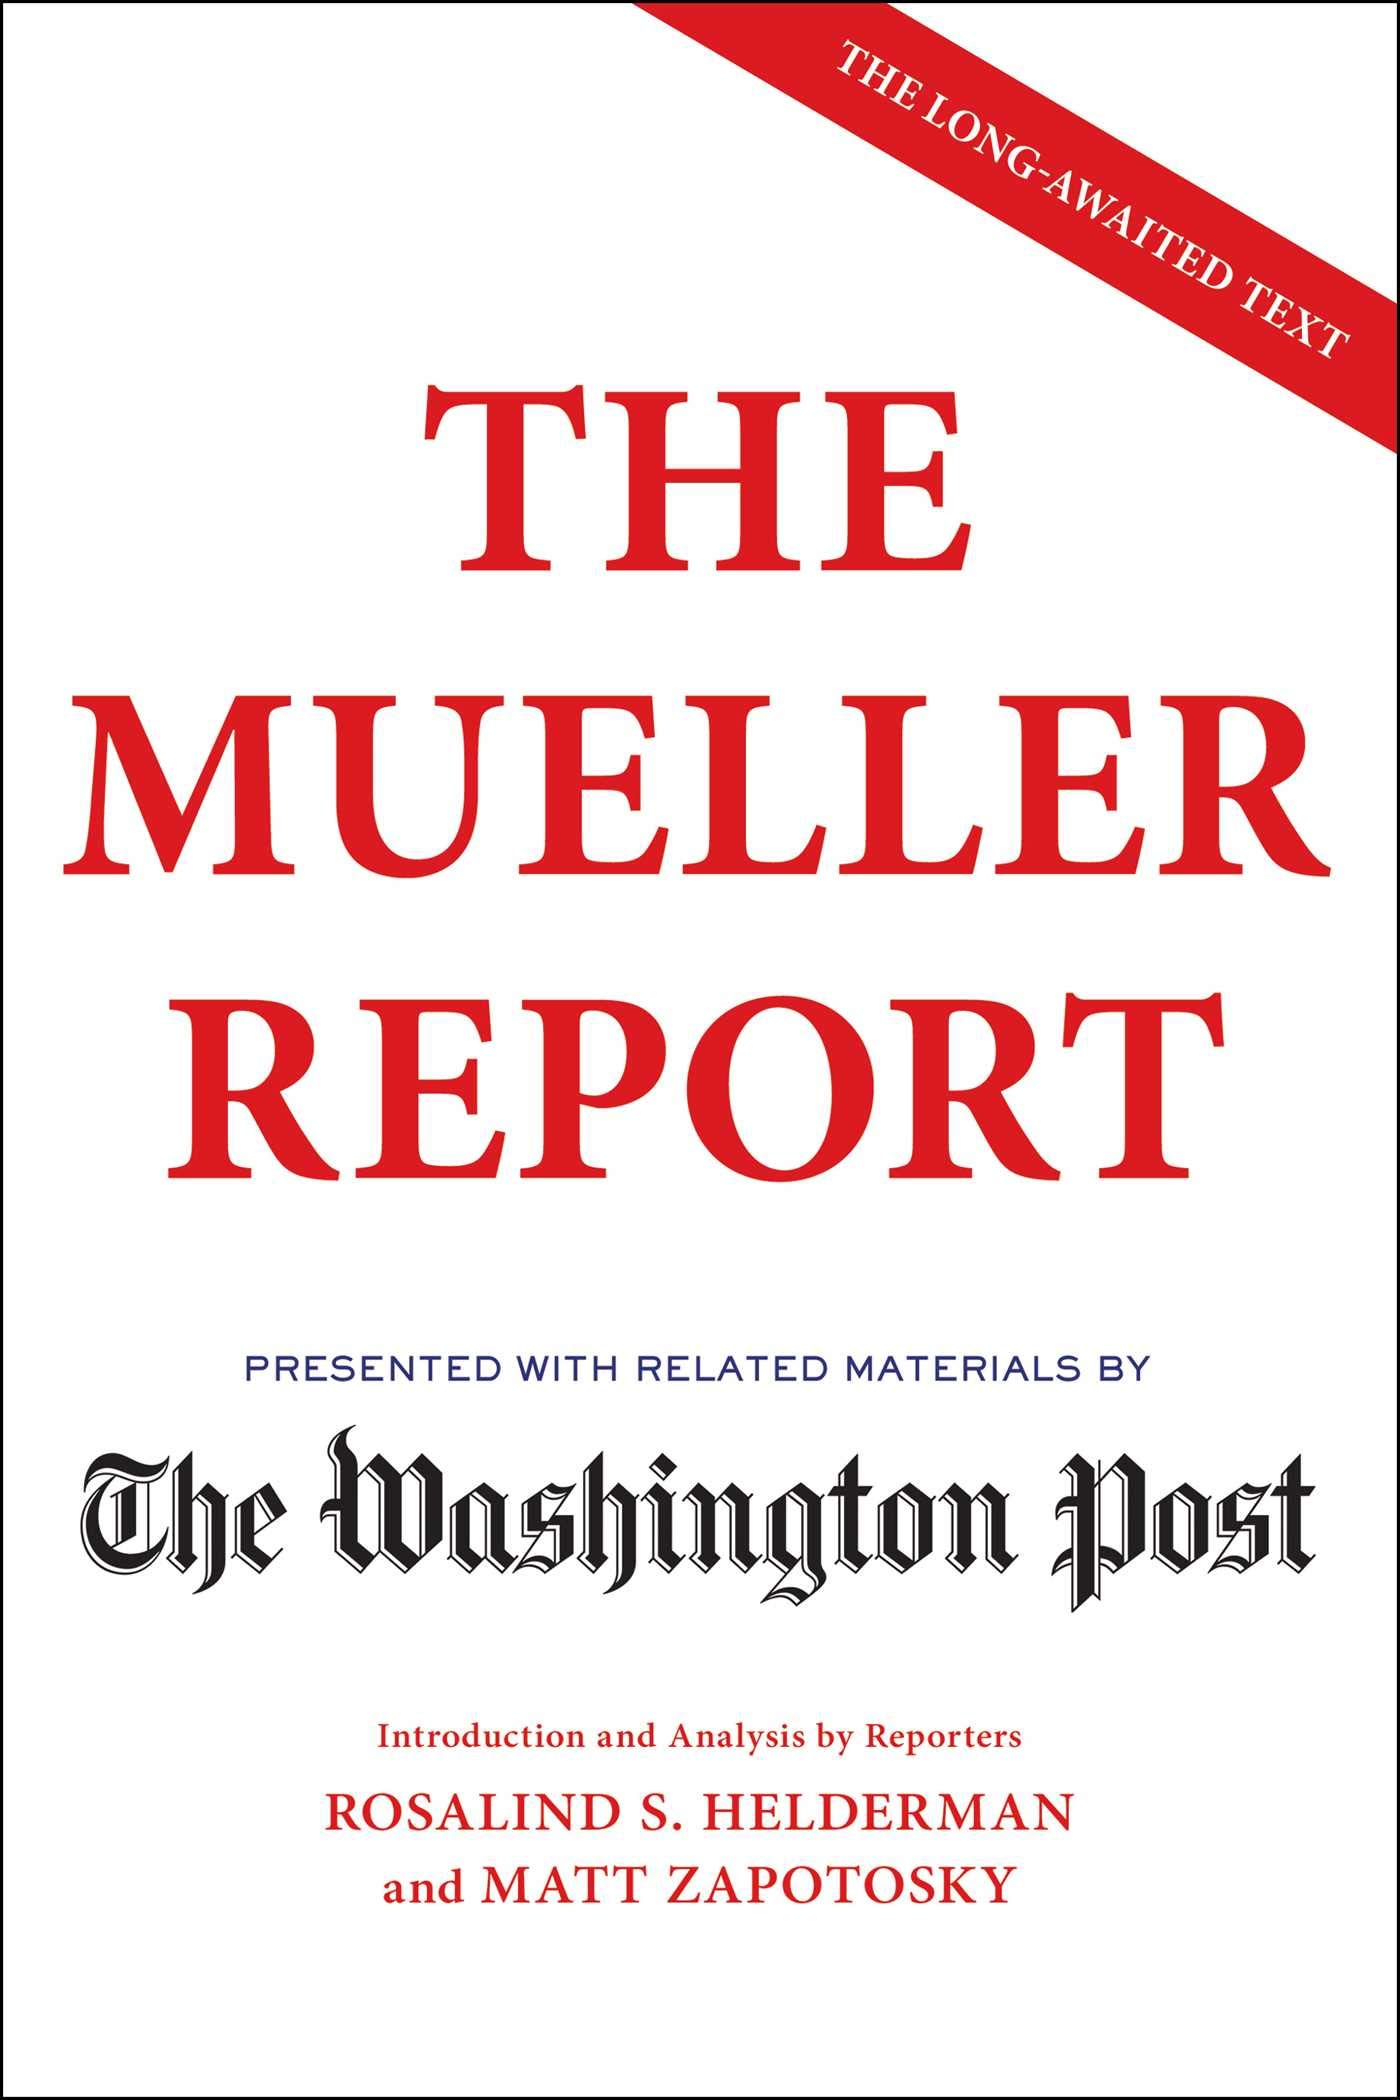 The Washington Post – The Mueller Report